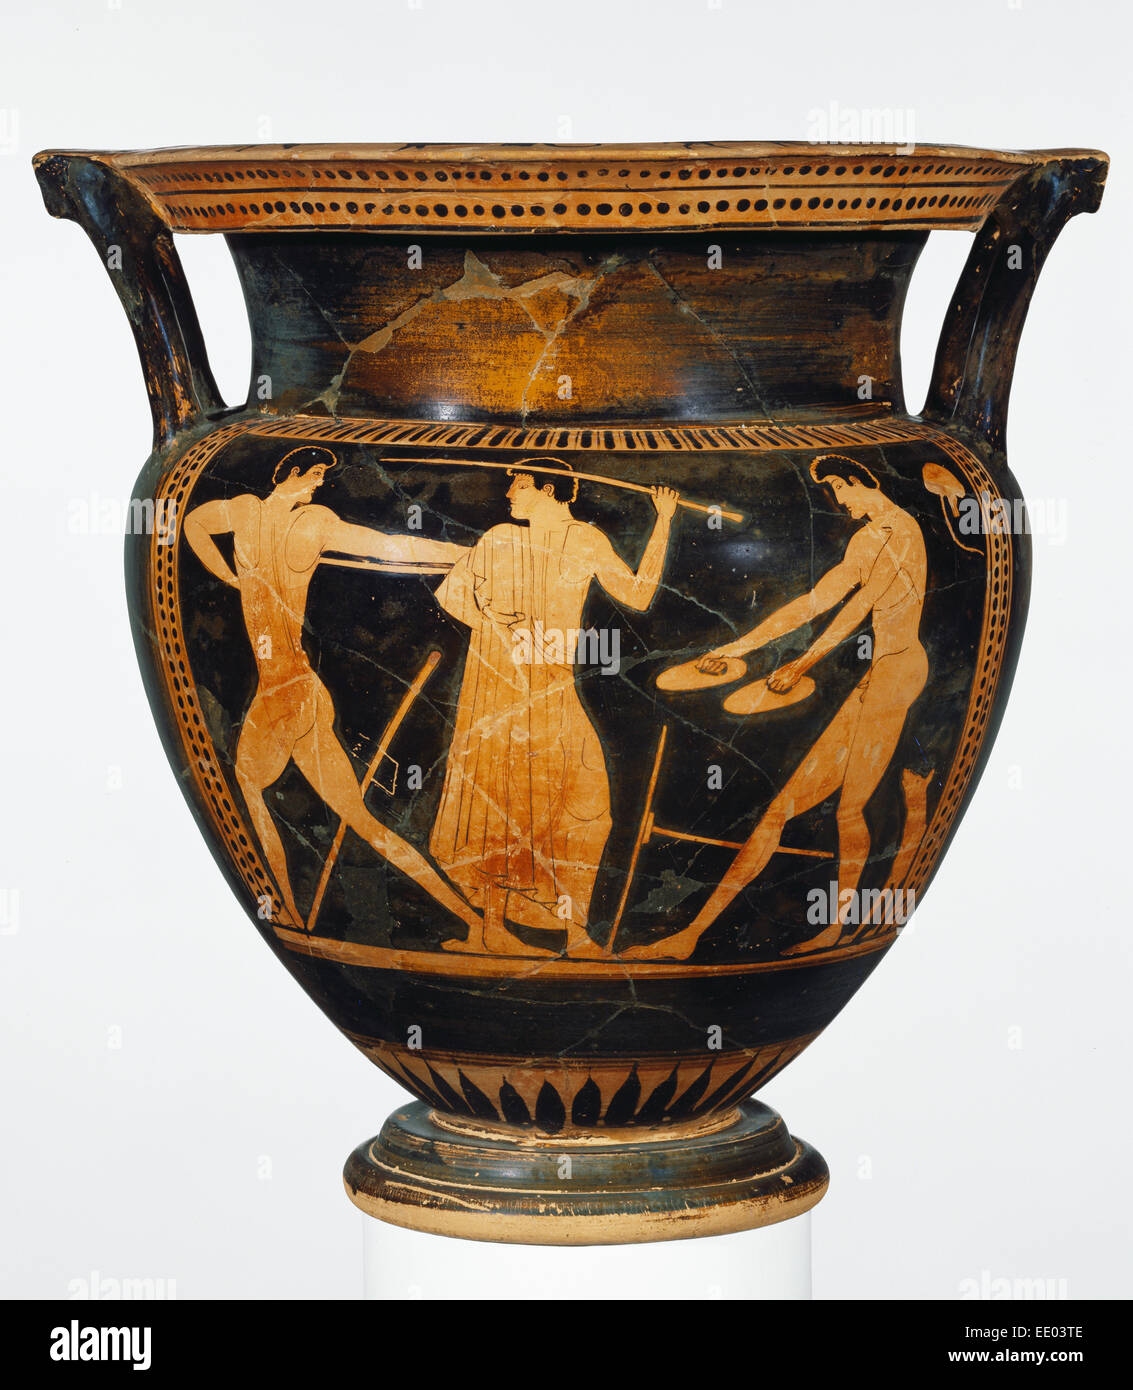 Attic Red-Figure Column Krater; Attributed to Myson, Greek (Attic), active 500 - 475 B.C.; Athens, Greece, Europe - Stock Image